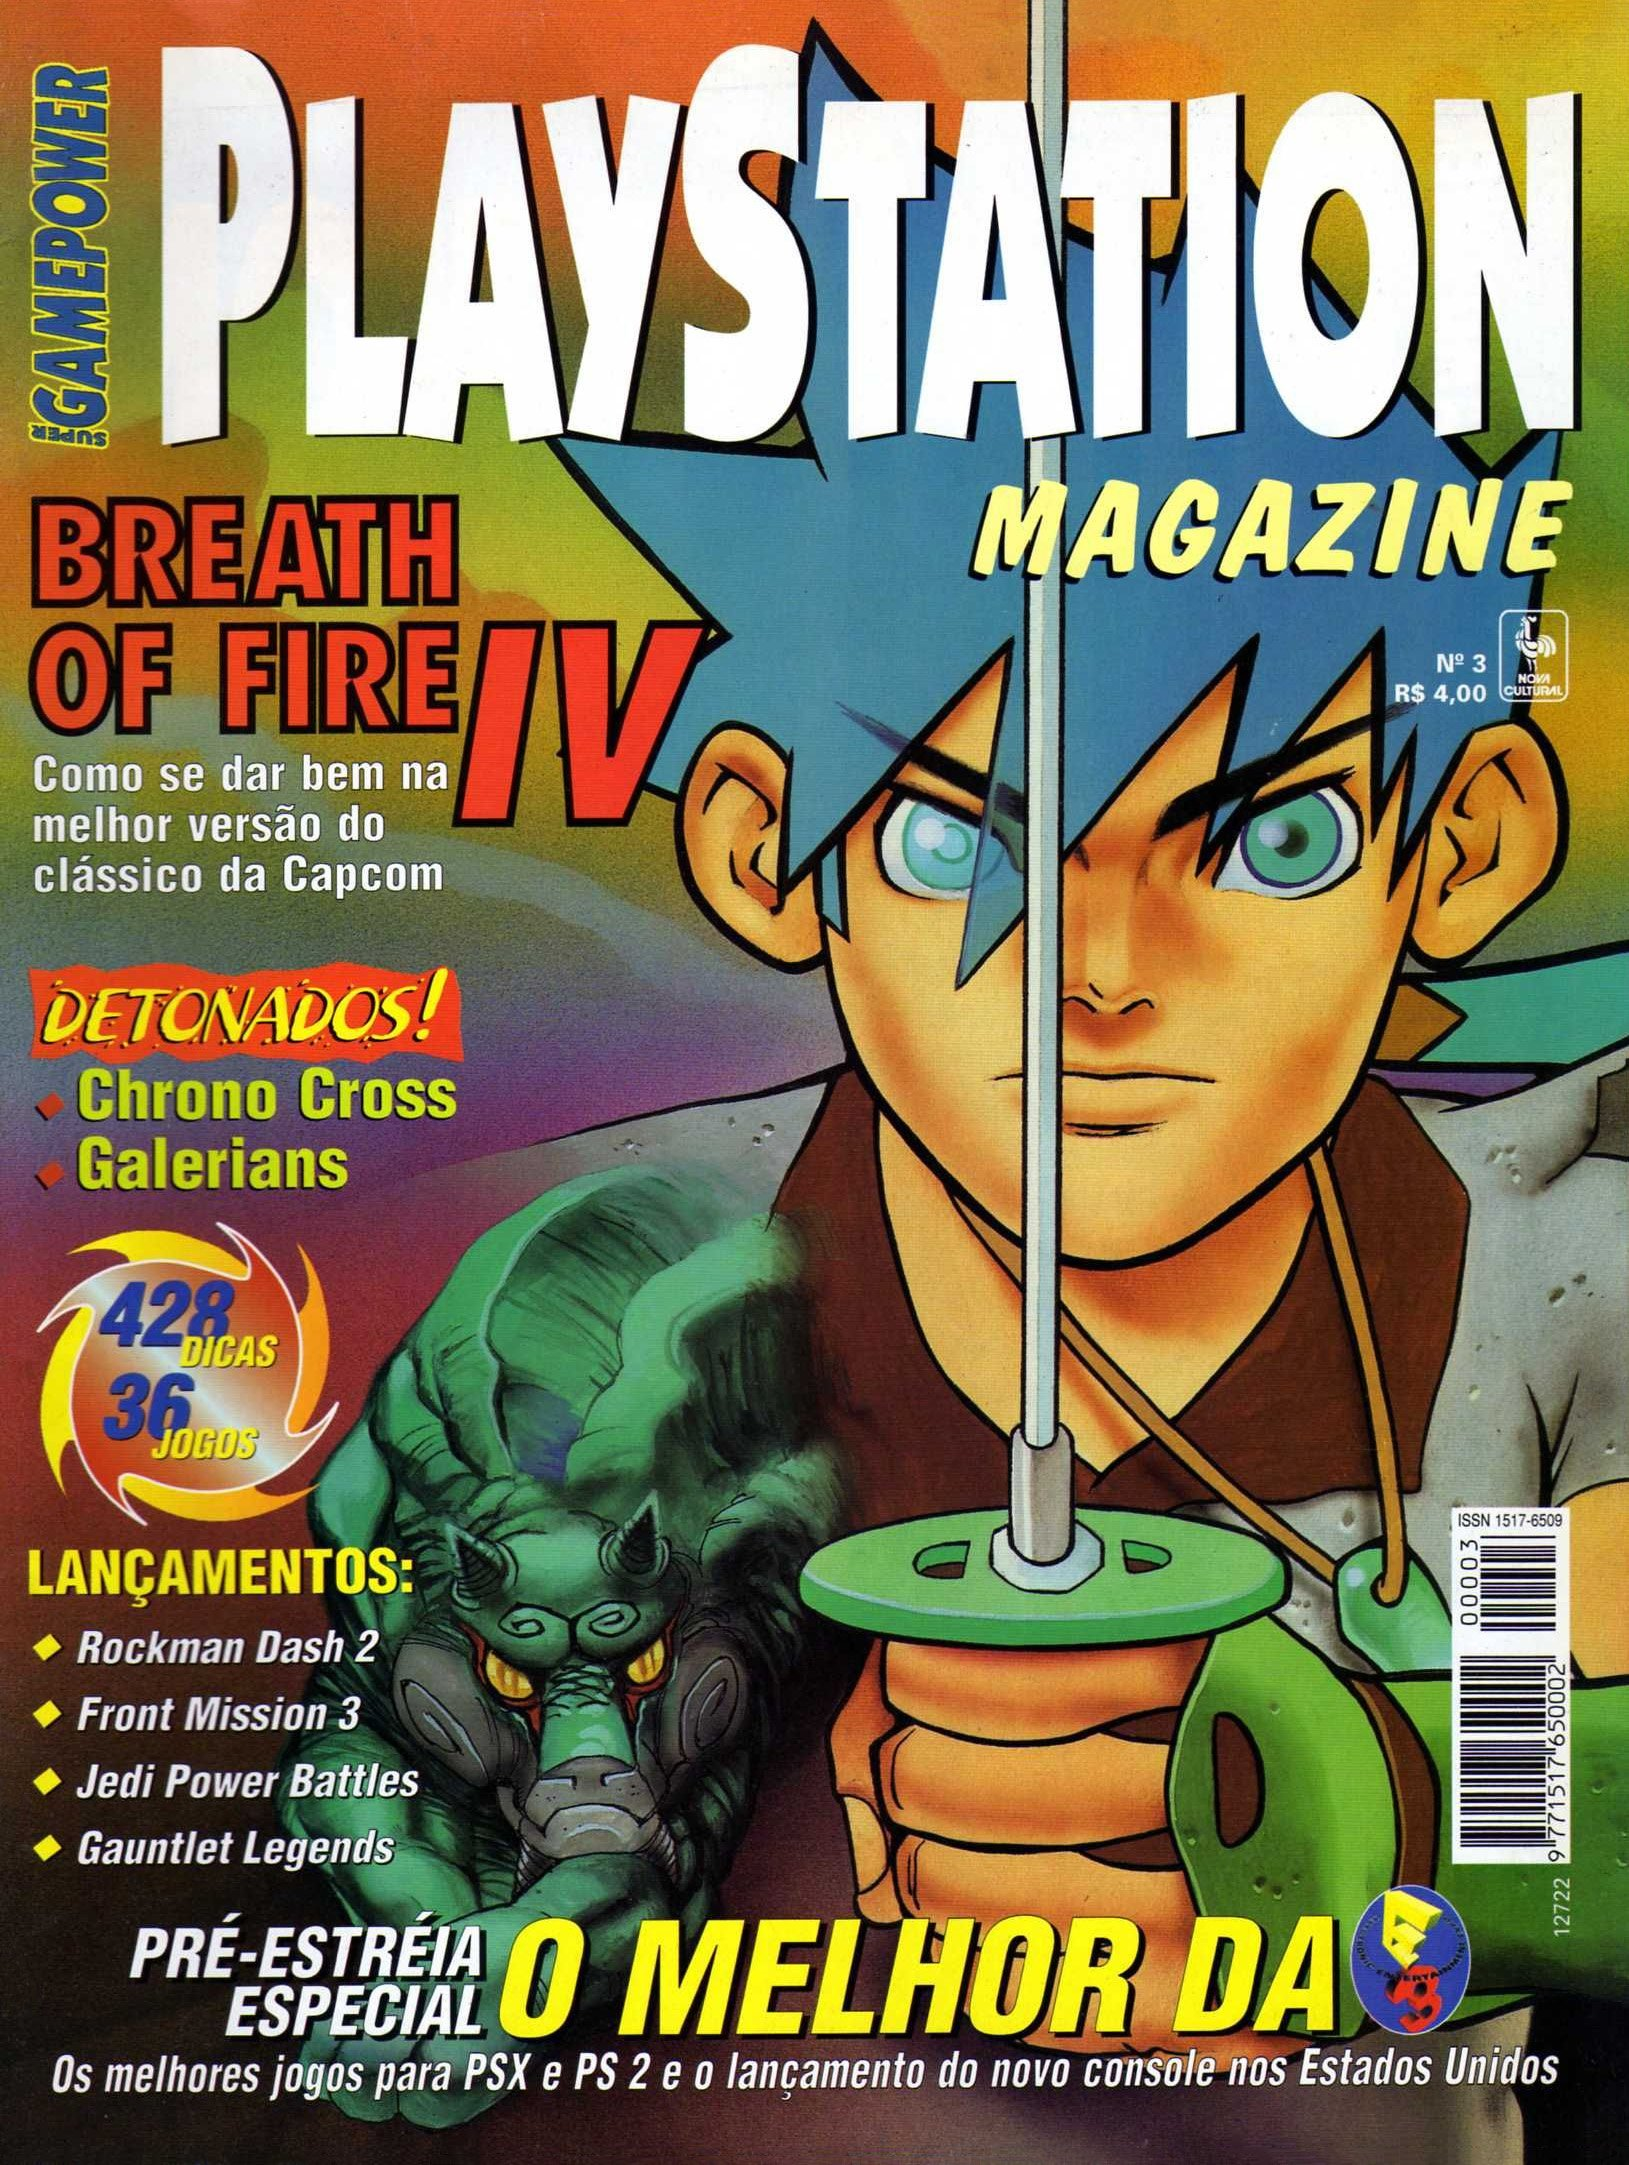 SGP Playstation Magazine Issue 03 (June 2000)